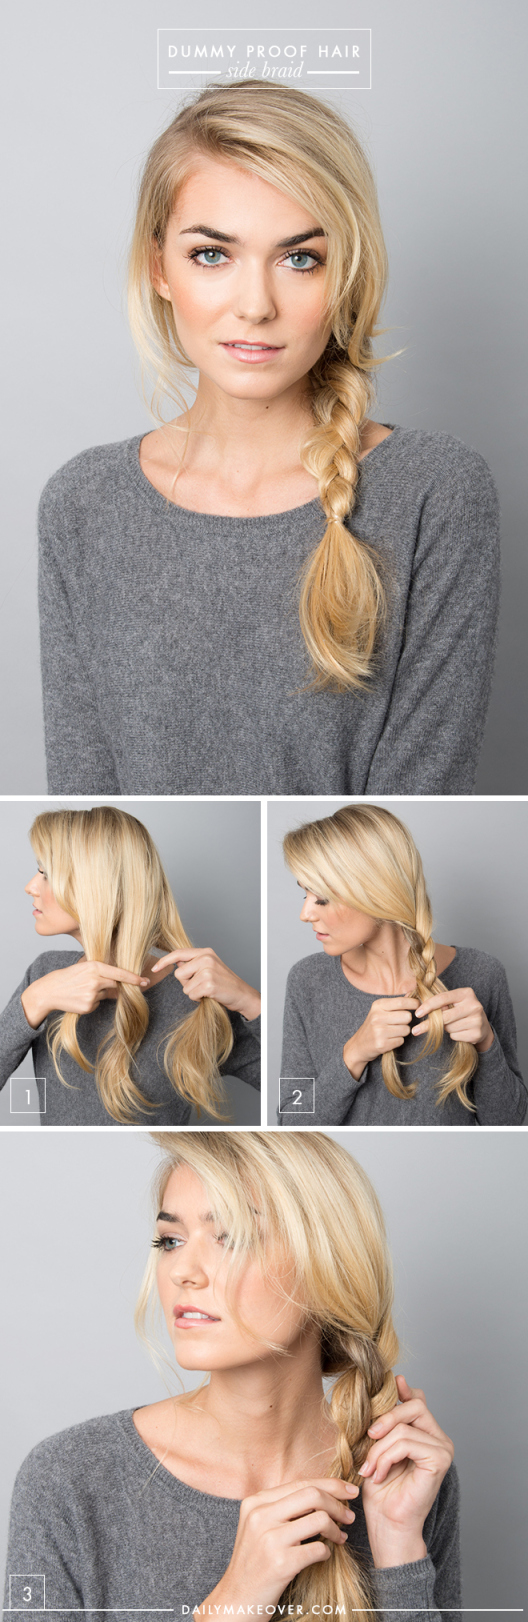 dummy-proof-hairstyles-side-braid